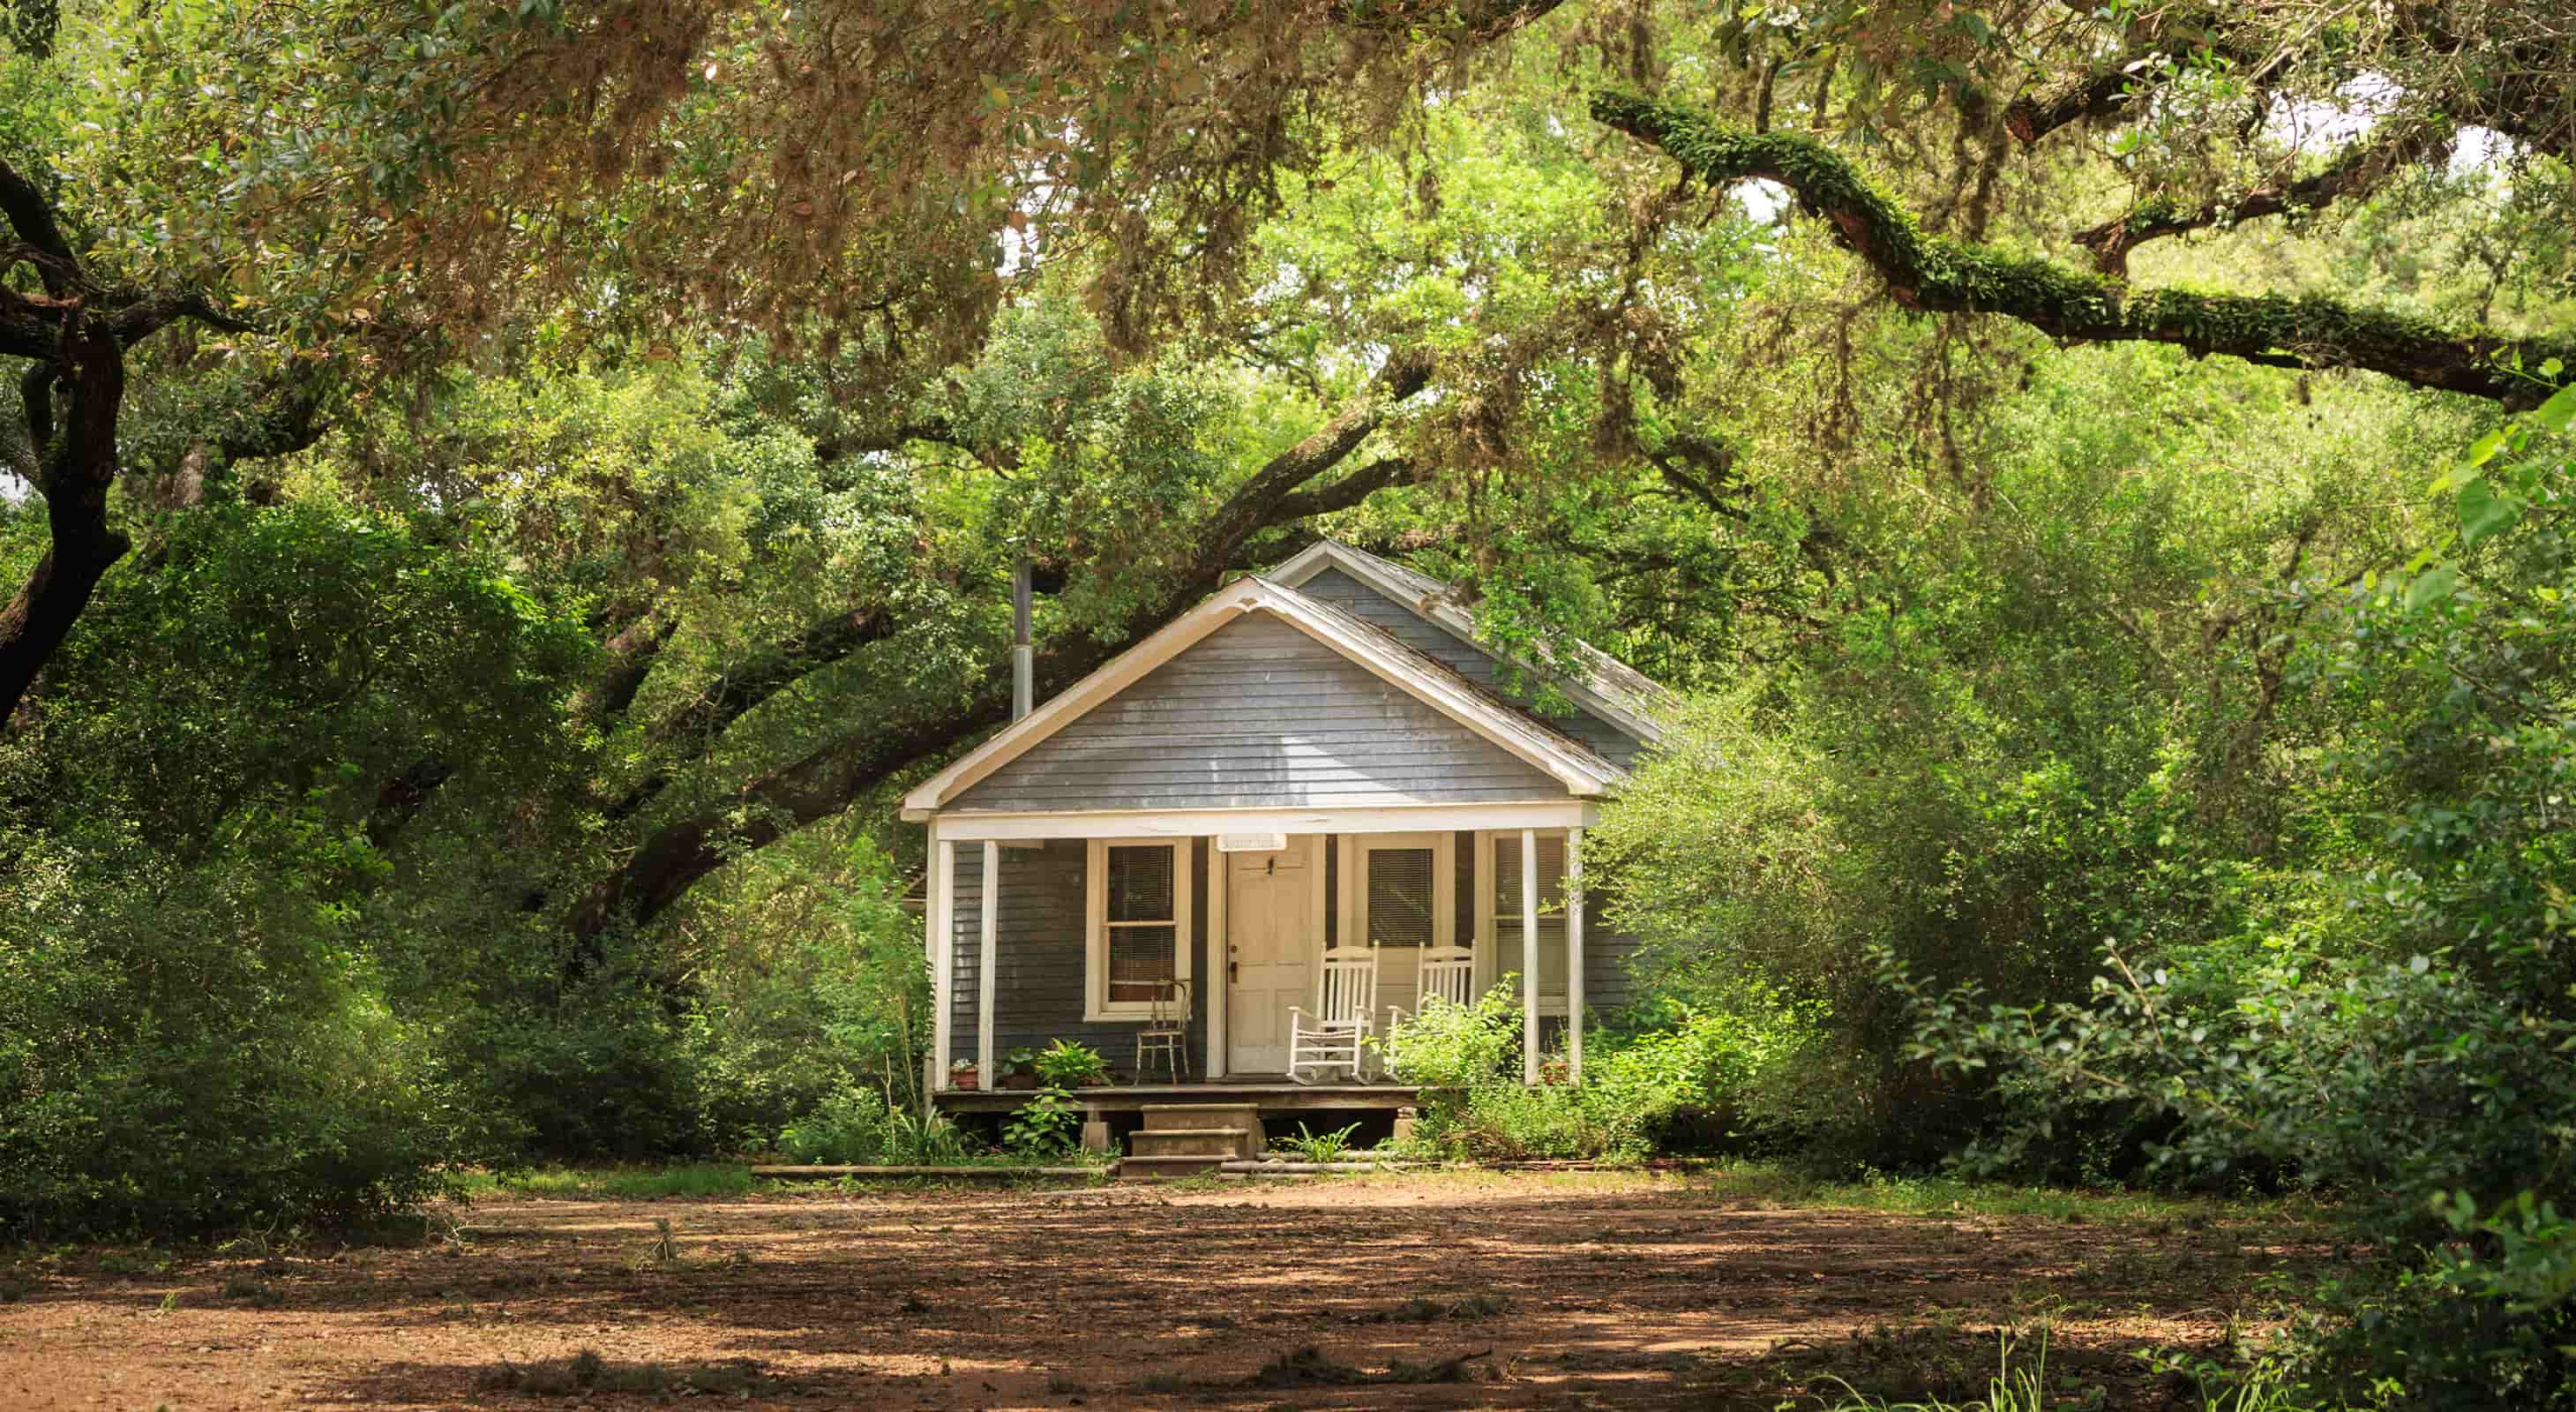 Exterior view of the Bluebonnet Bungalow surrounded by trees